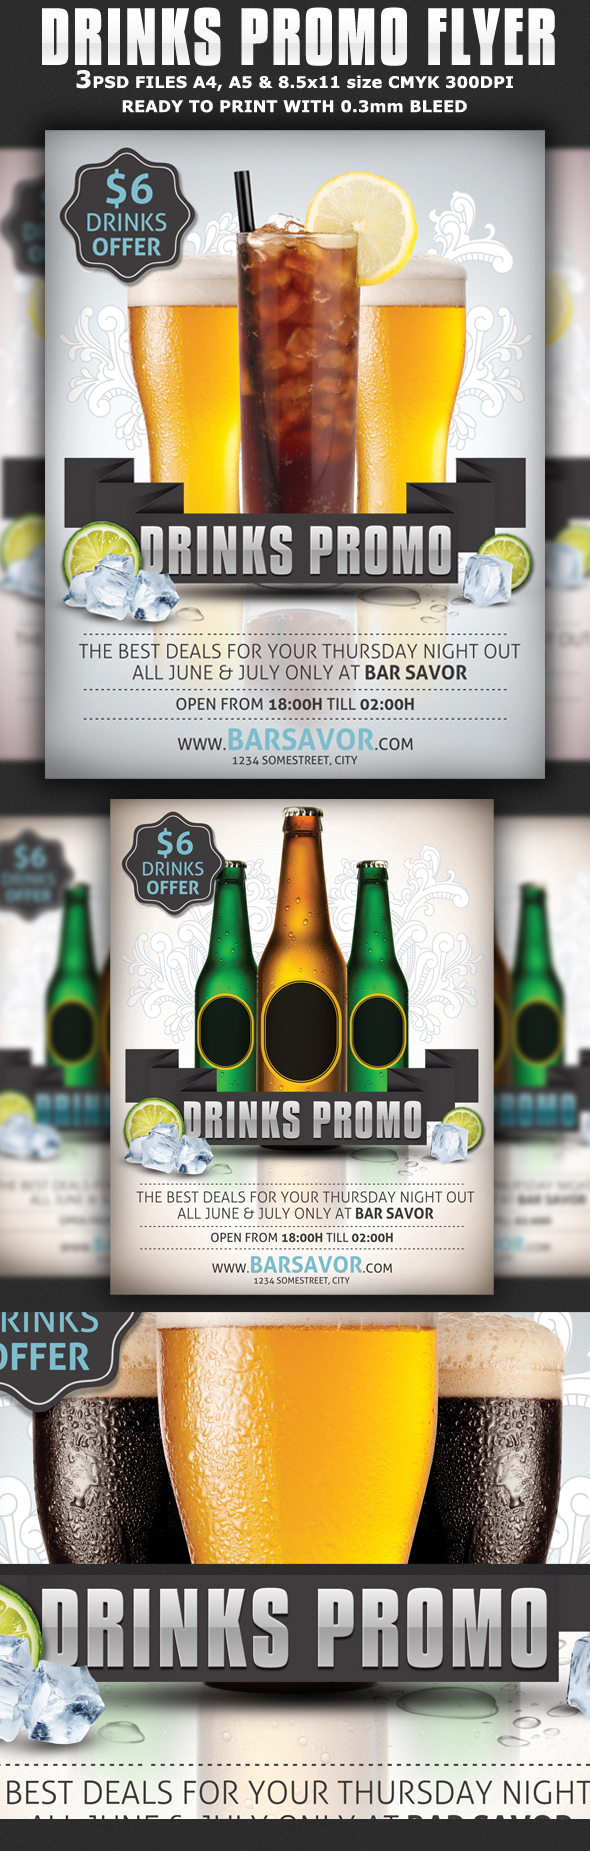 Drinks Promo Flyer Template On Behance